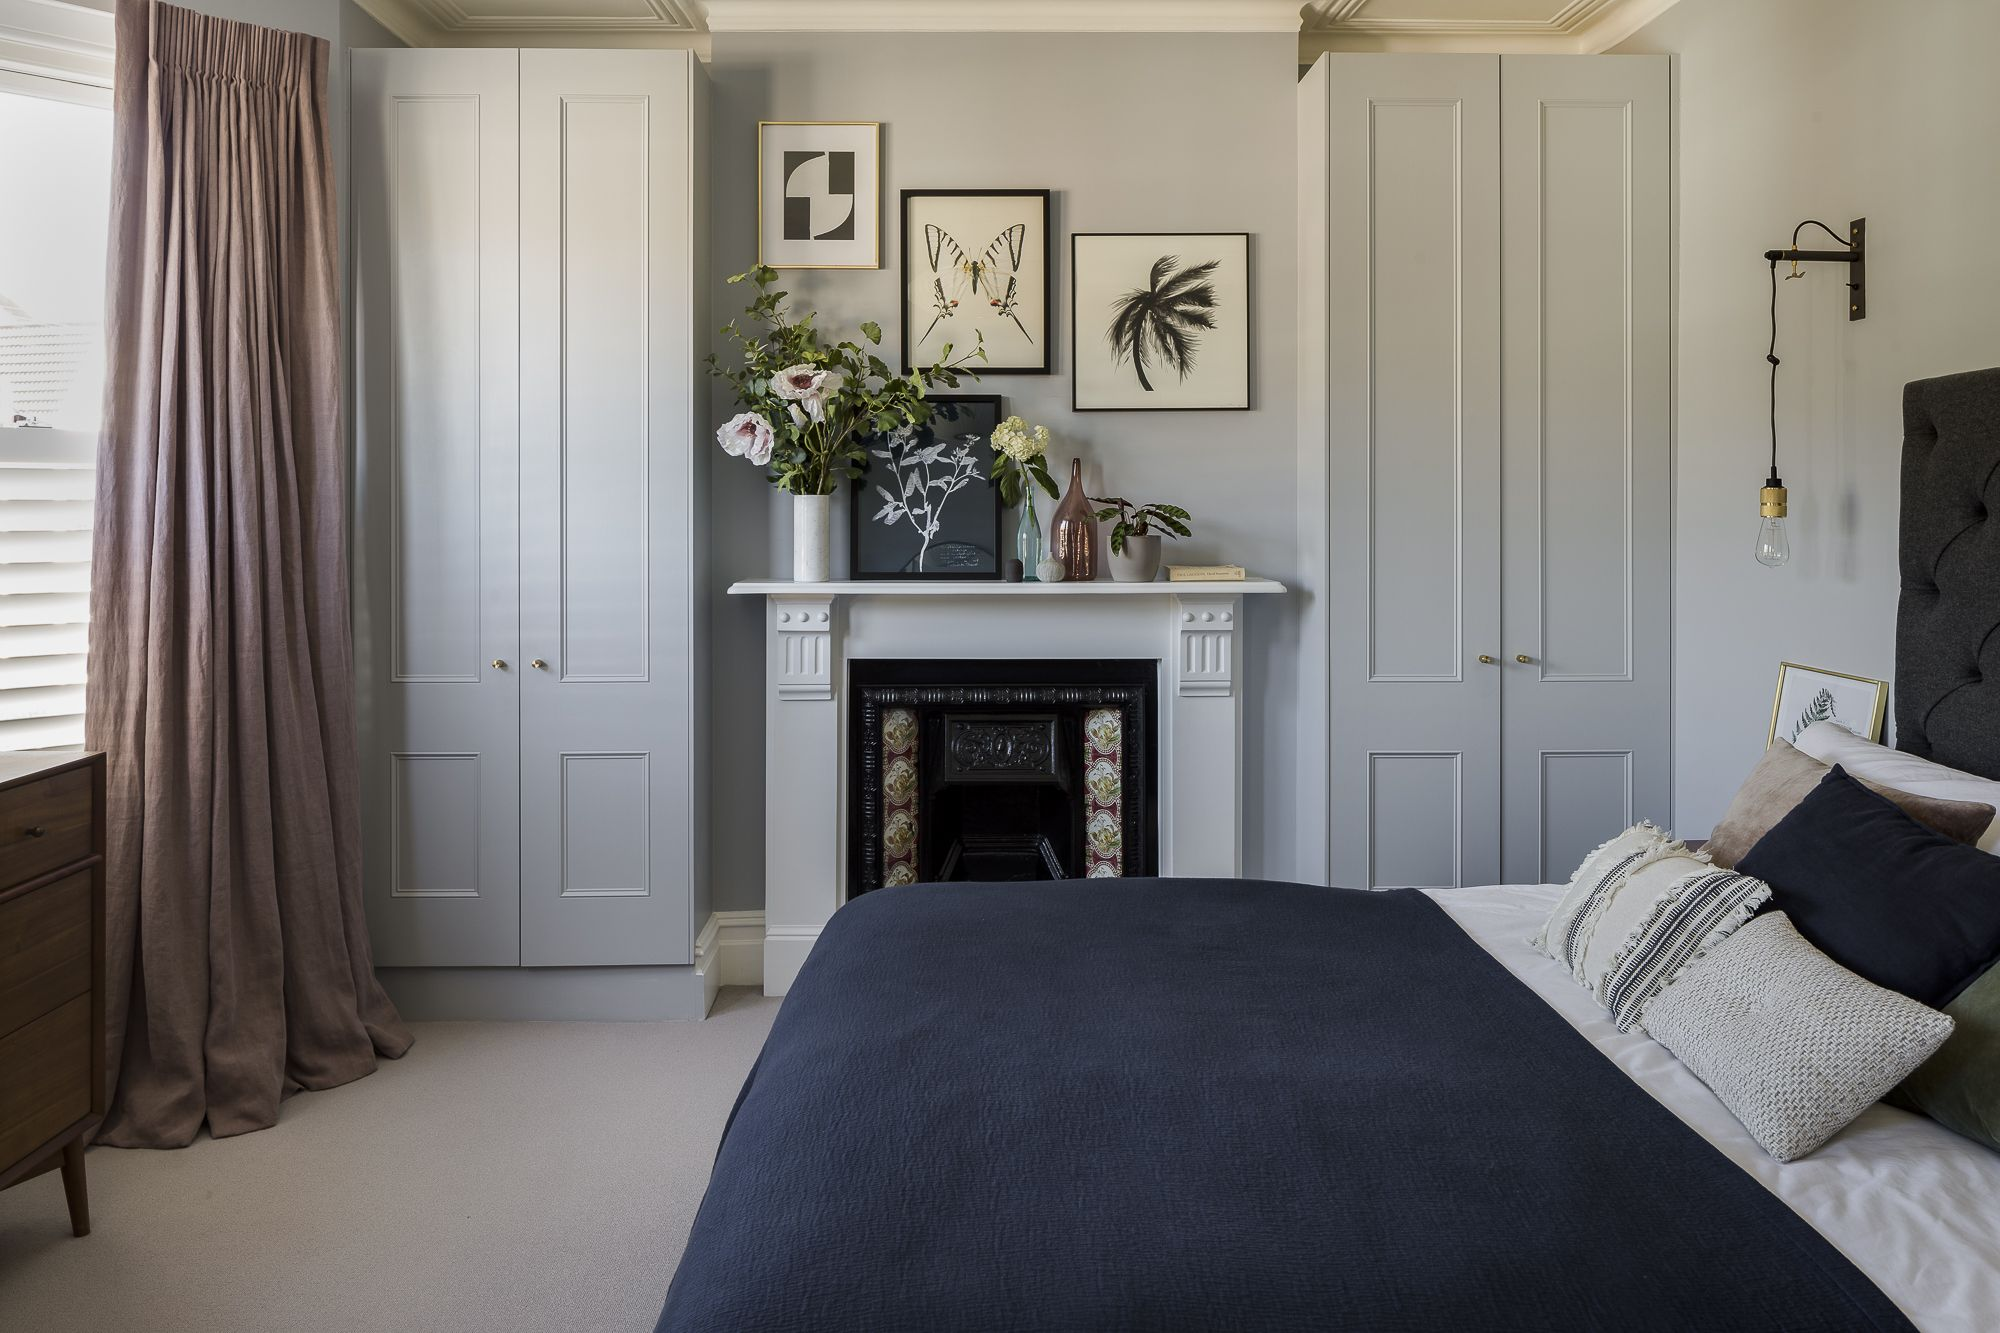 Interior Design By Imperfect Interiors At This Victorian Terraced House In Balham London A Palette Victorian House Interiors Home Bedroom Home Decor Bedroom